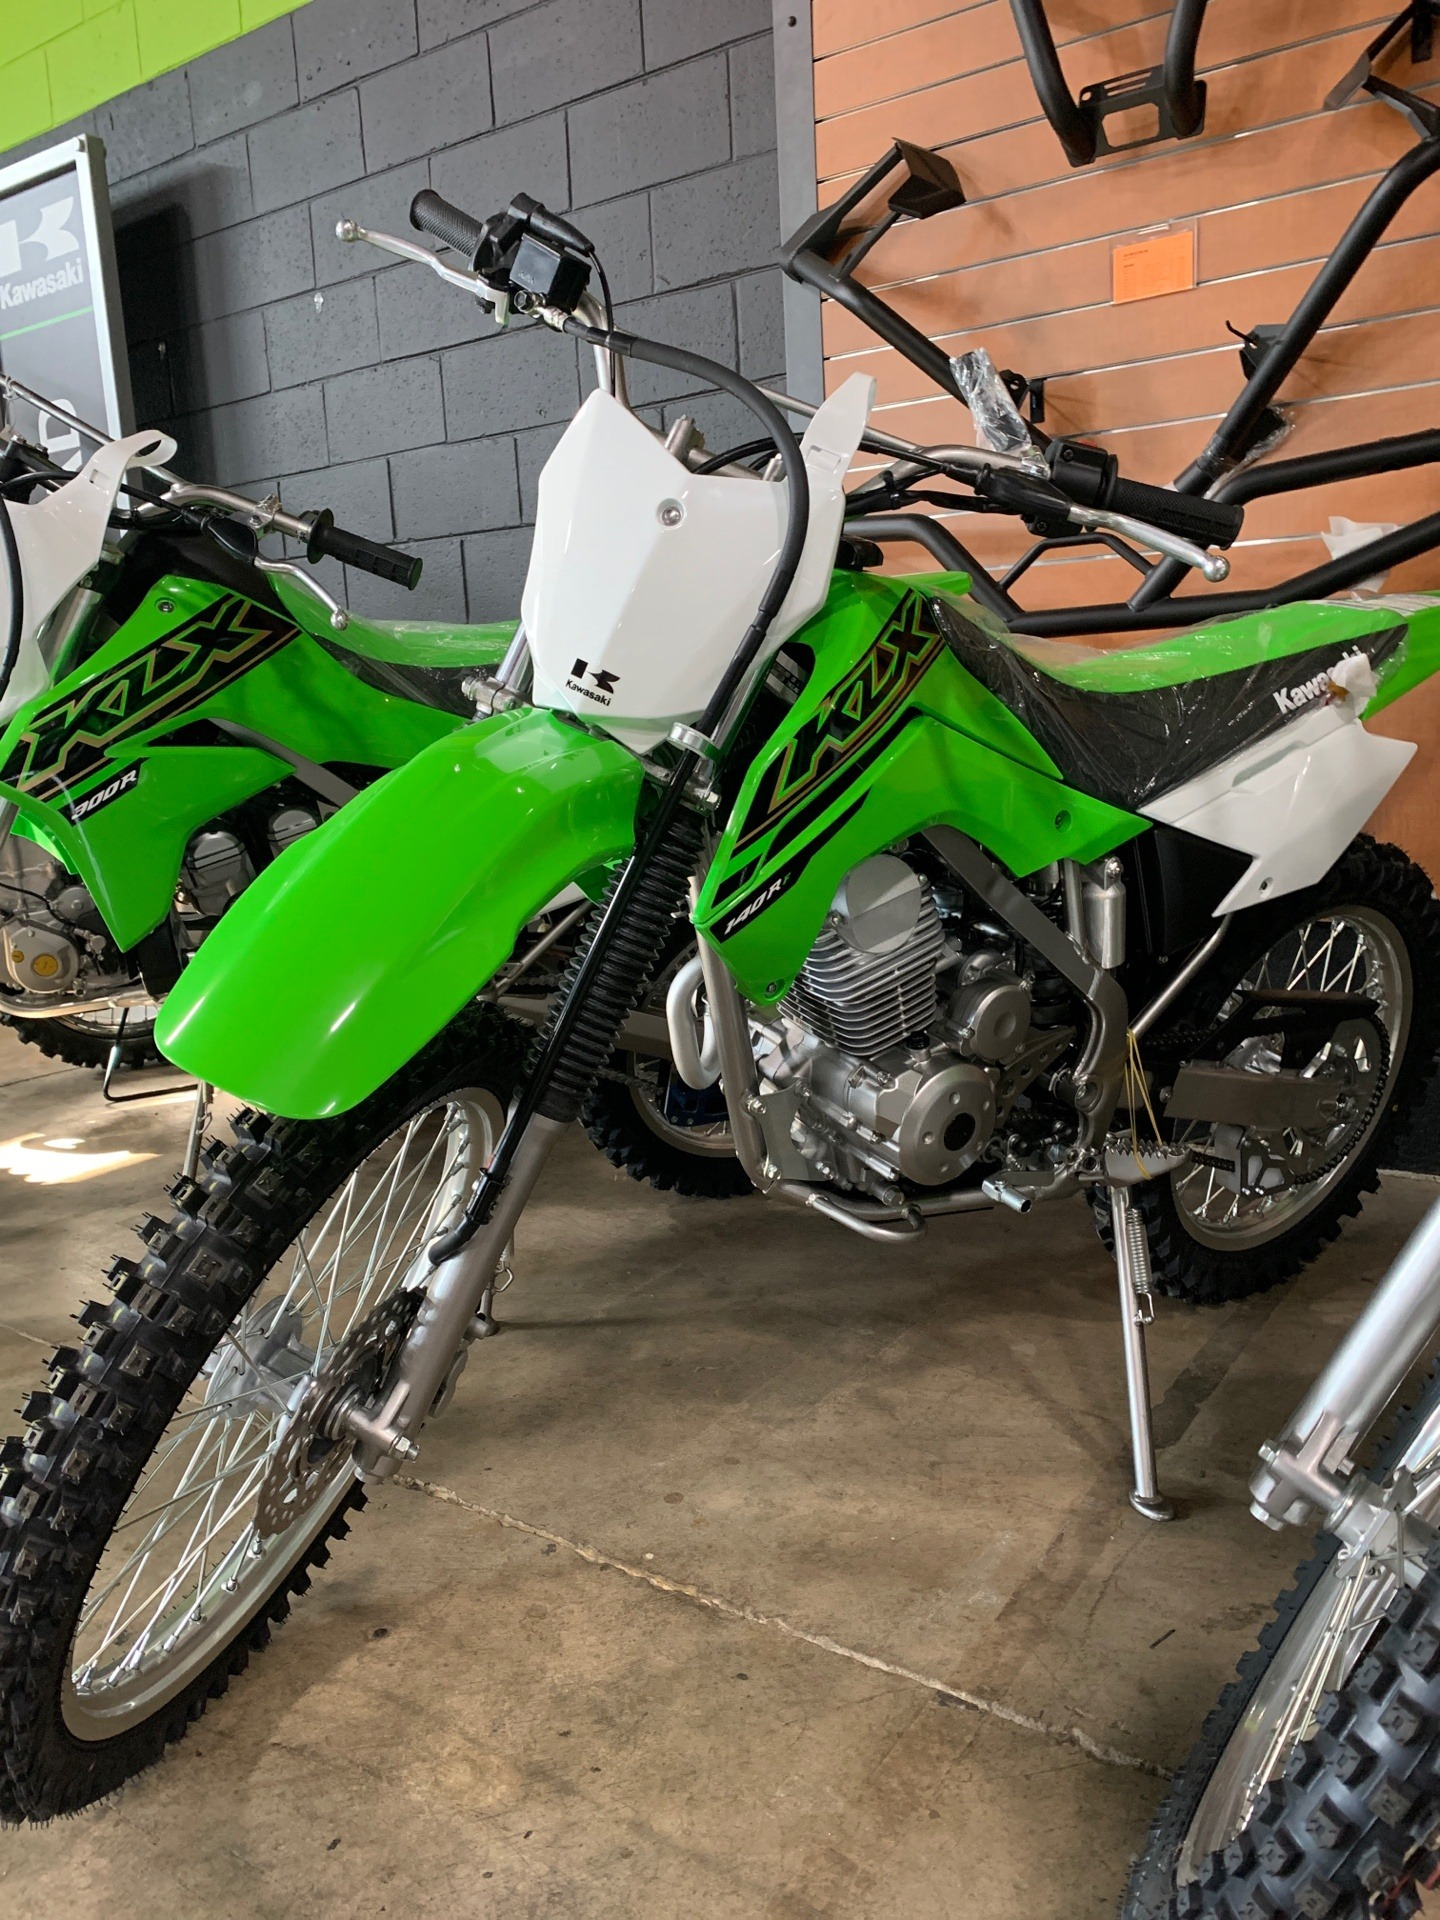 2021 Kawasaki KLX 140R F in Woodstock, Illinois - Photo 1